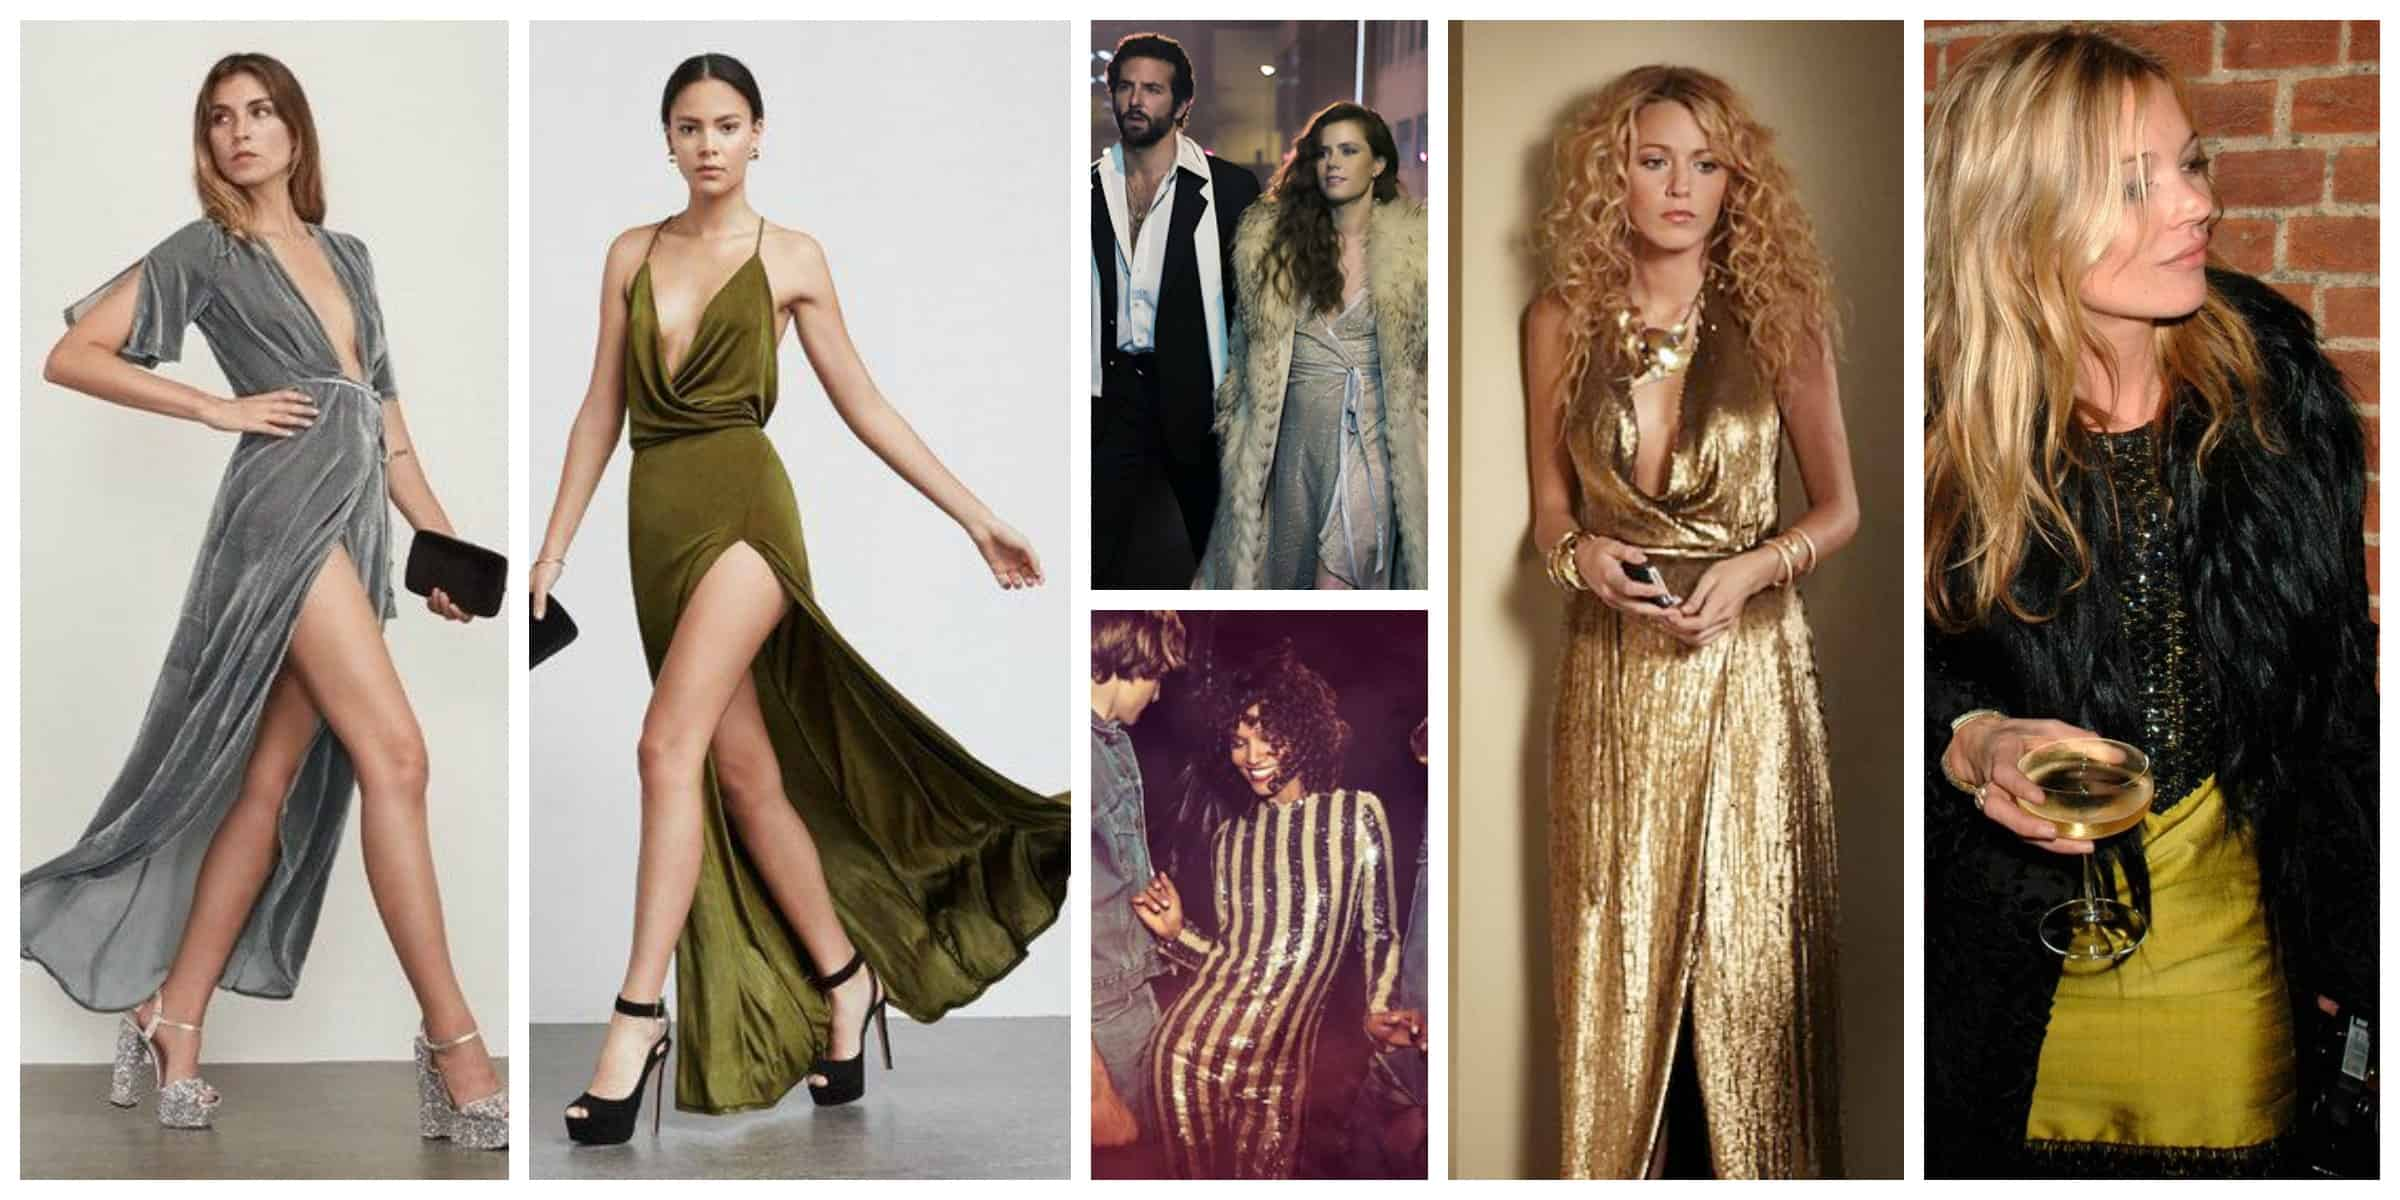 Find great deals on eBay for studio 54 costumes. Shop with confidence.